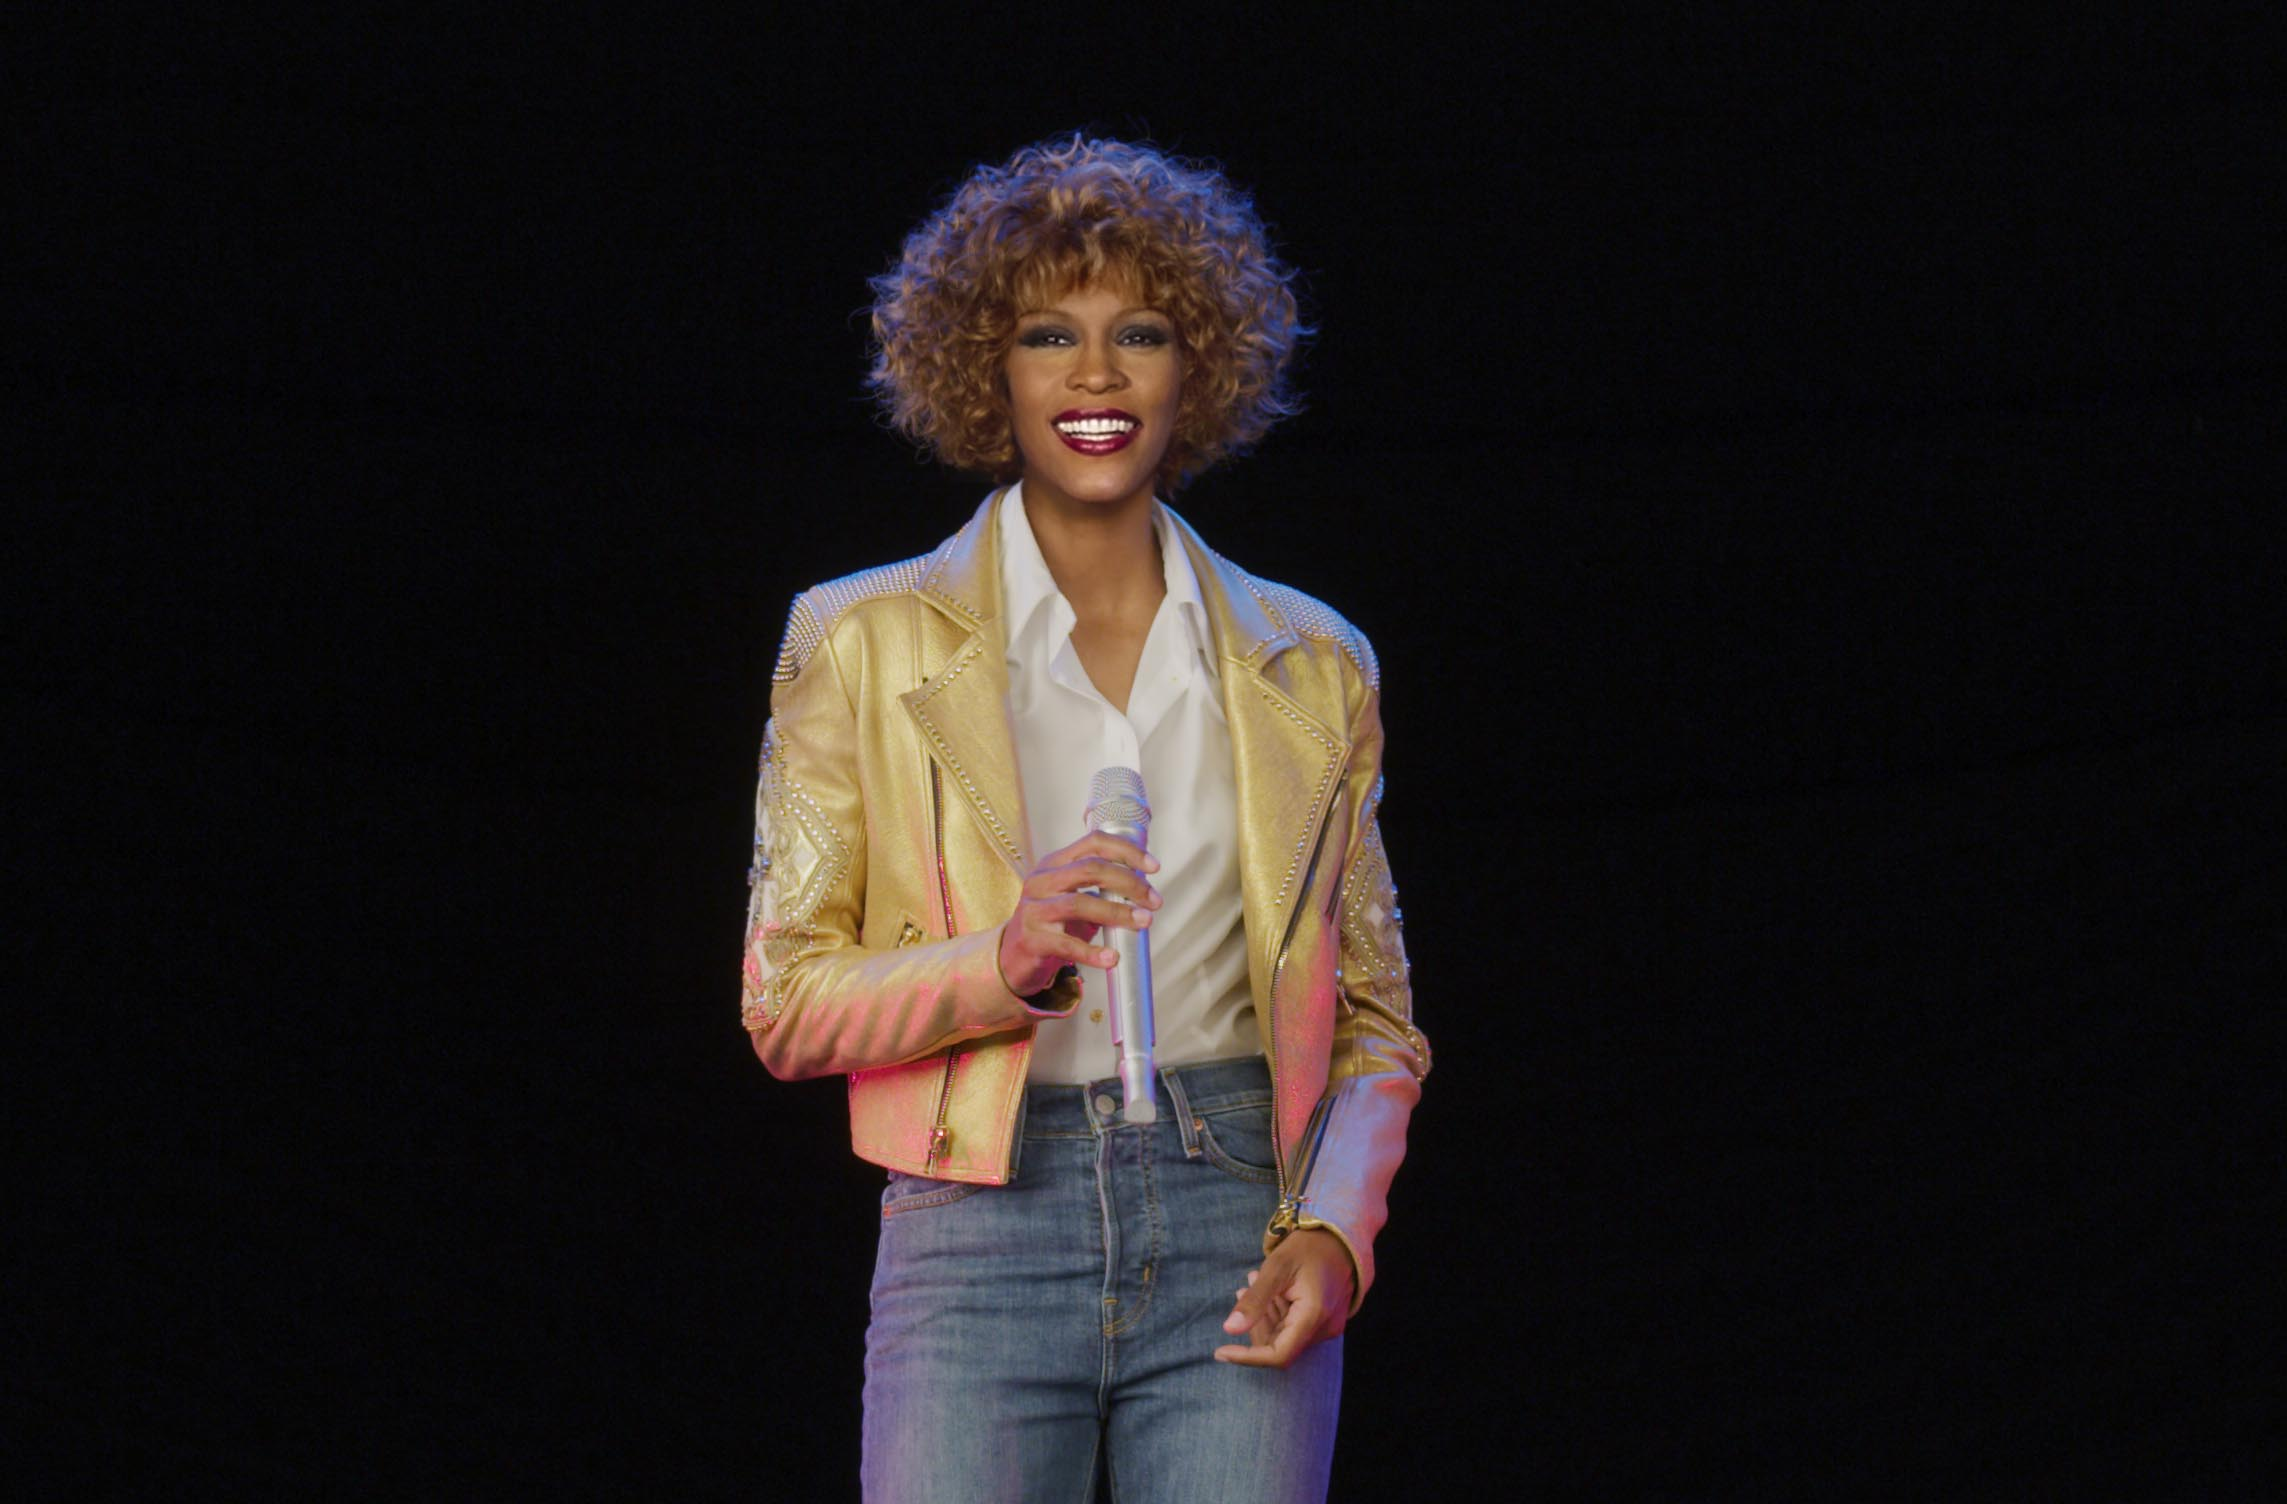 'The Only Thing Missing Was Her, Physically.' Inside the Whitney Houston Hologram Tour